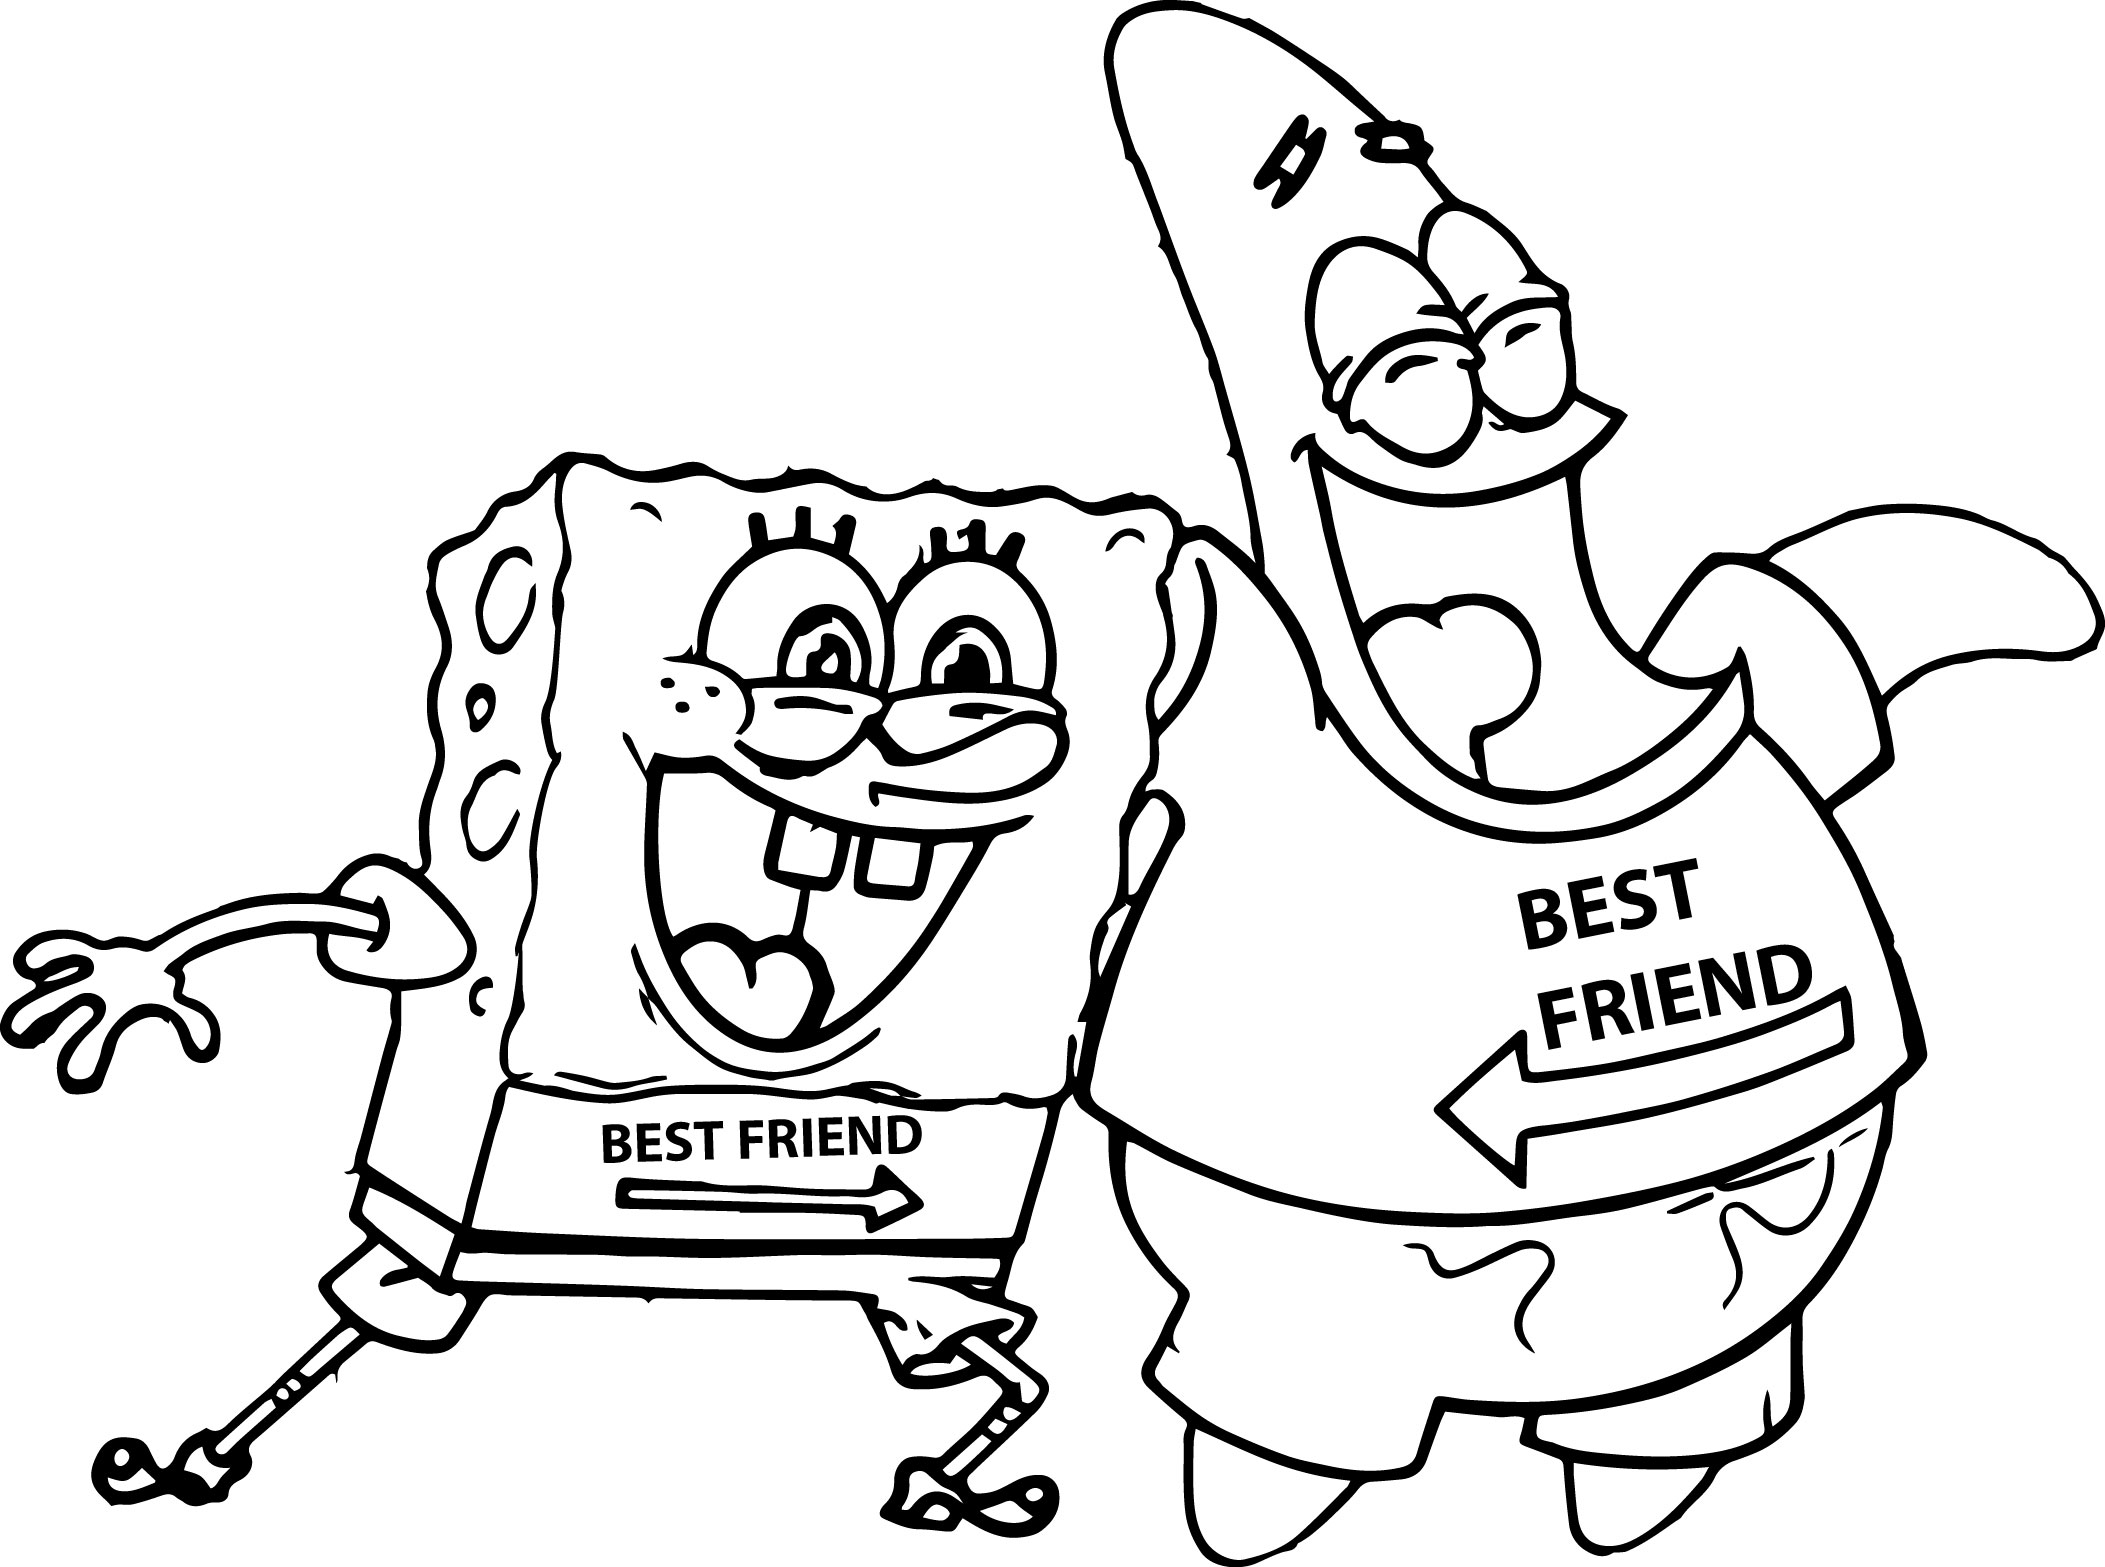 friends coloring page best friend coloring pages to download and print for free page friends coloring